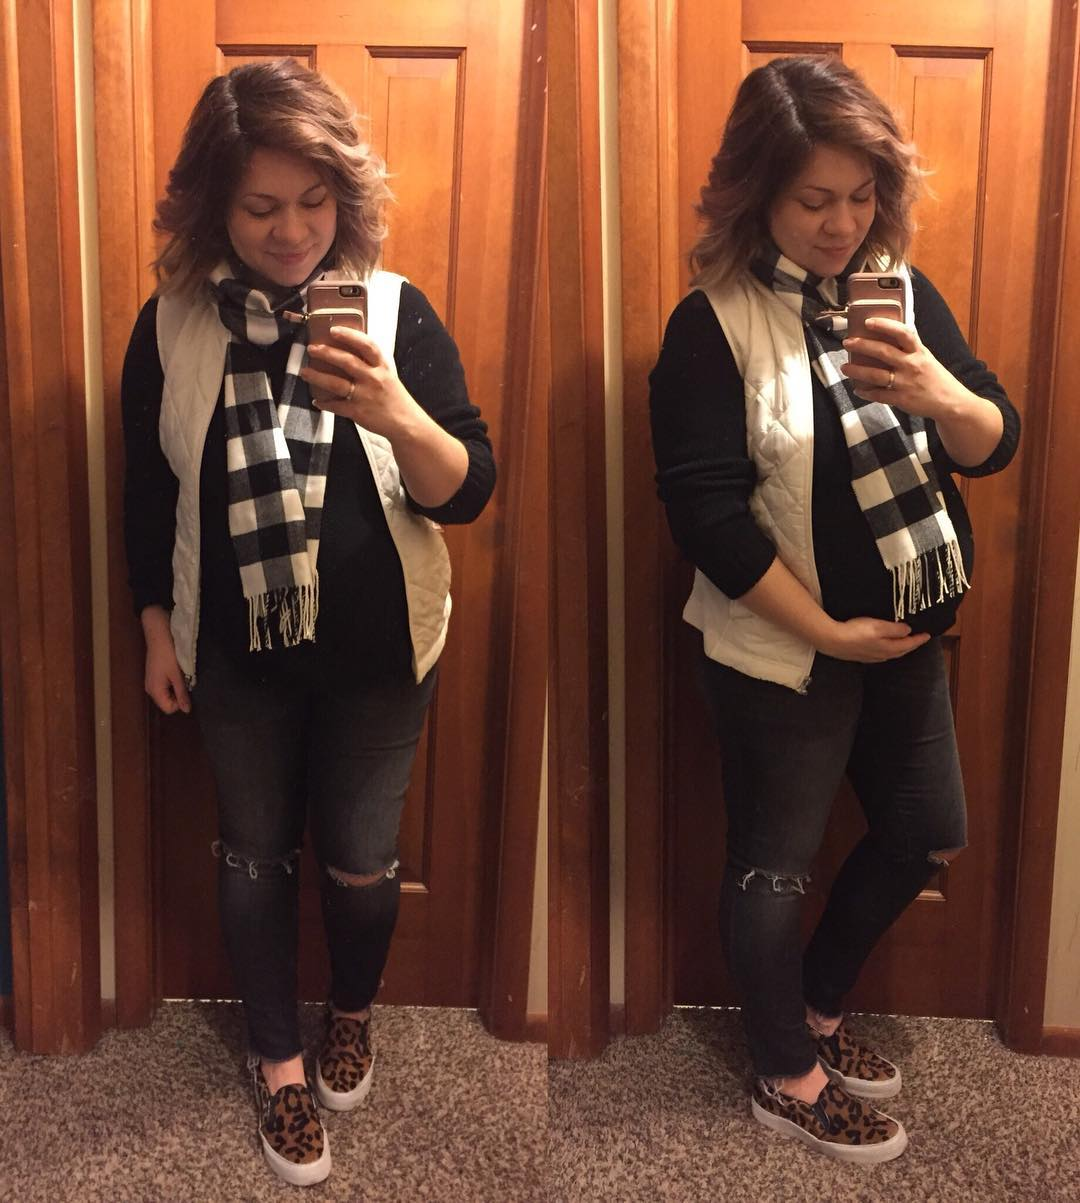 OOTD for family movie night at 35.5 weeks!! Almost there with baby #4